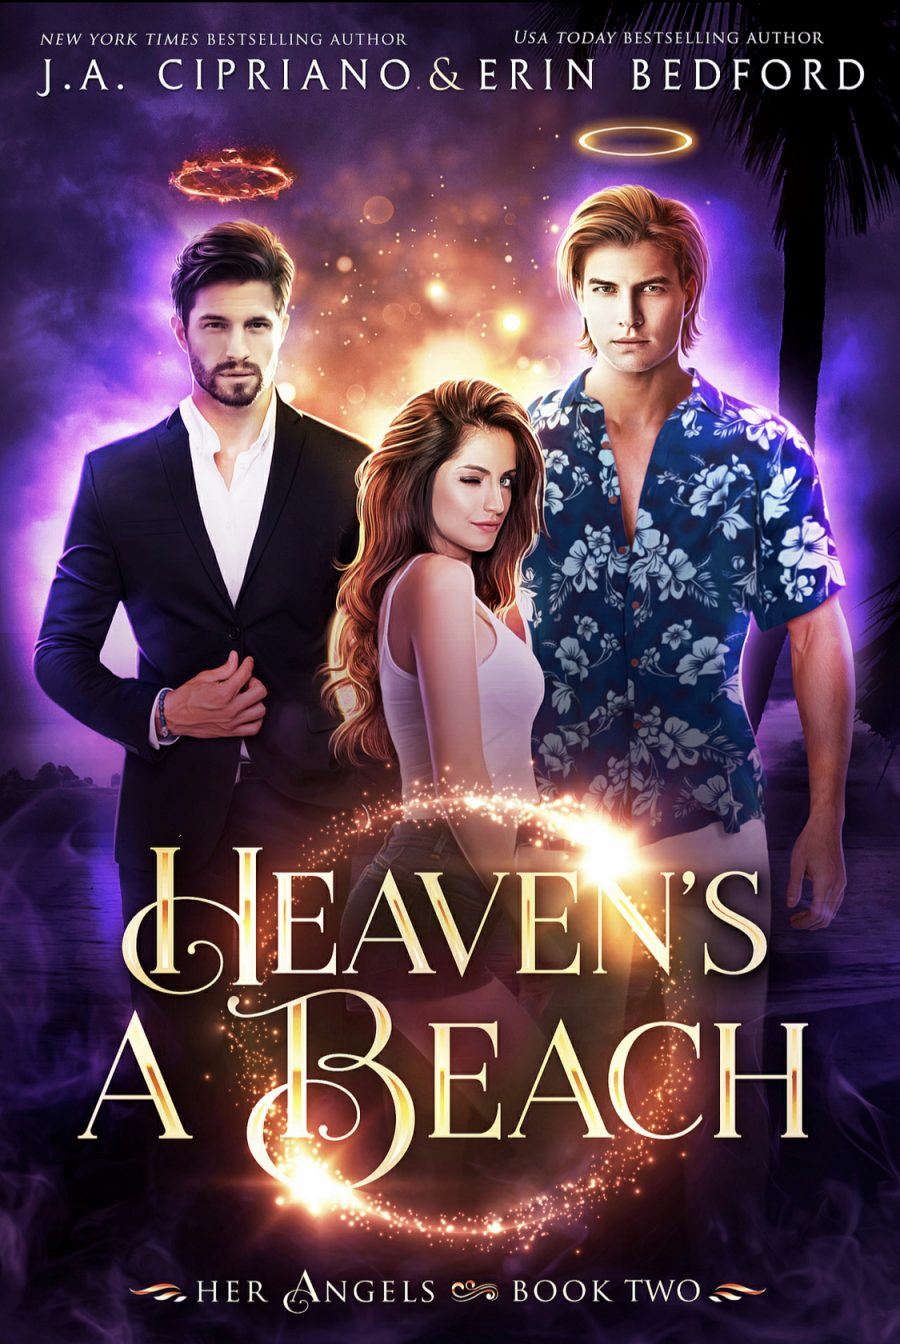 Heaven's A Beach by J.A. Cipriano & Erin Bedford - A Book Review #BookReview #FastBurn #RH #ReverseHarem #PNR #Funny #Angels